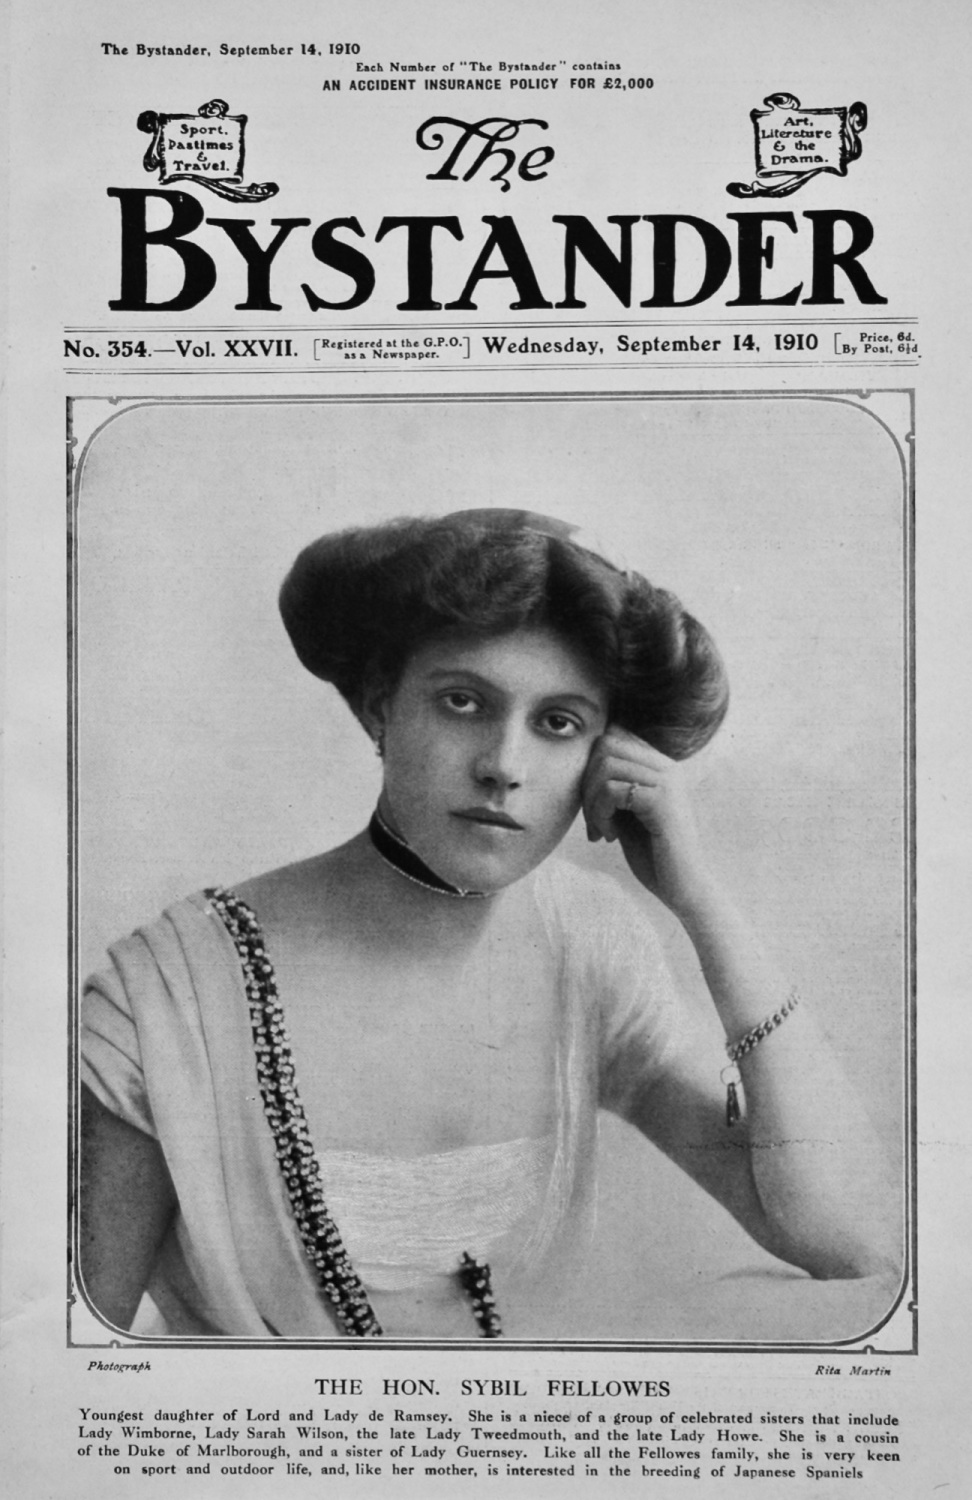 The Bystander Sept 14th 1910.